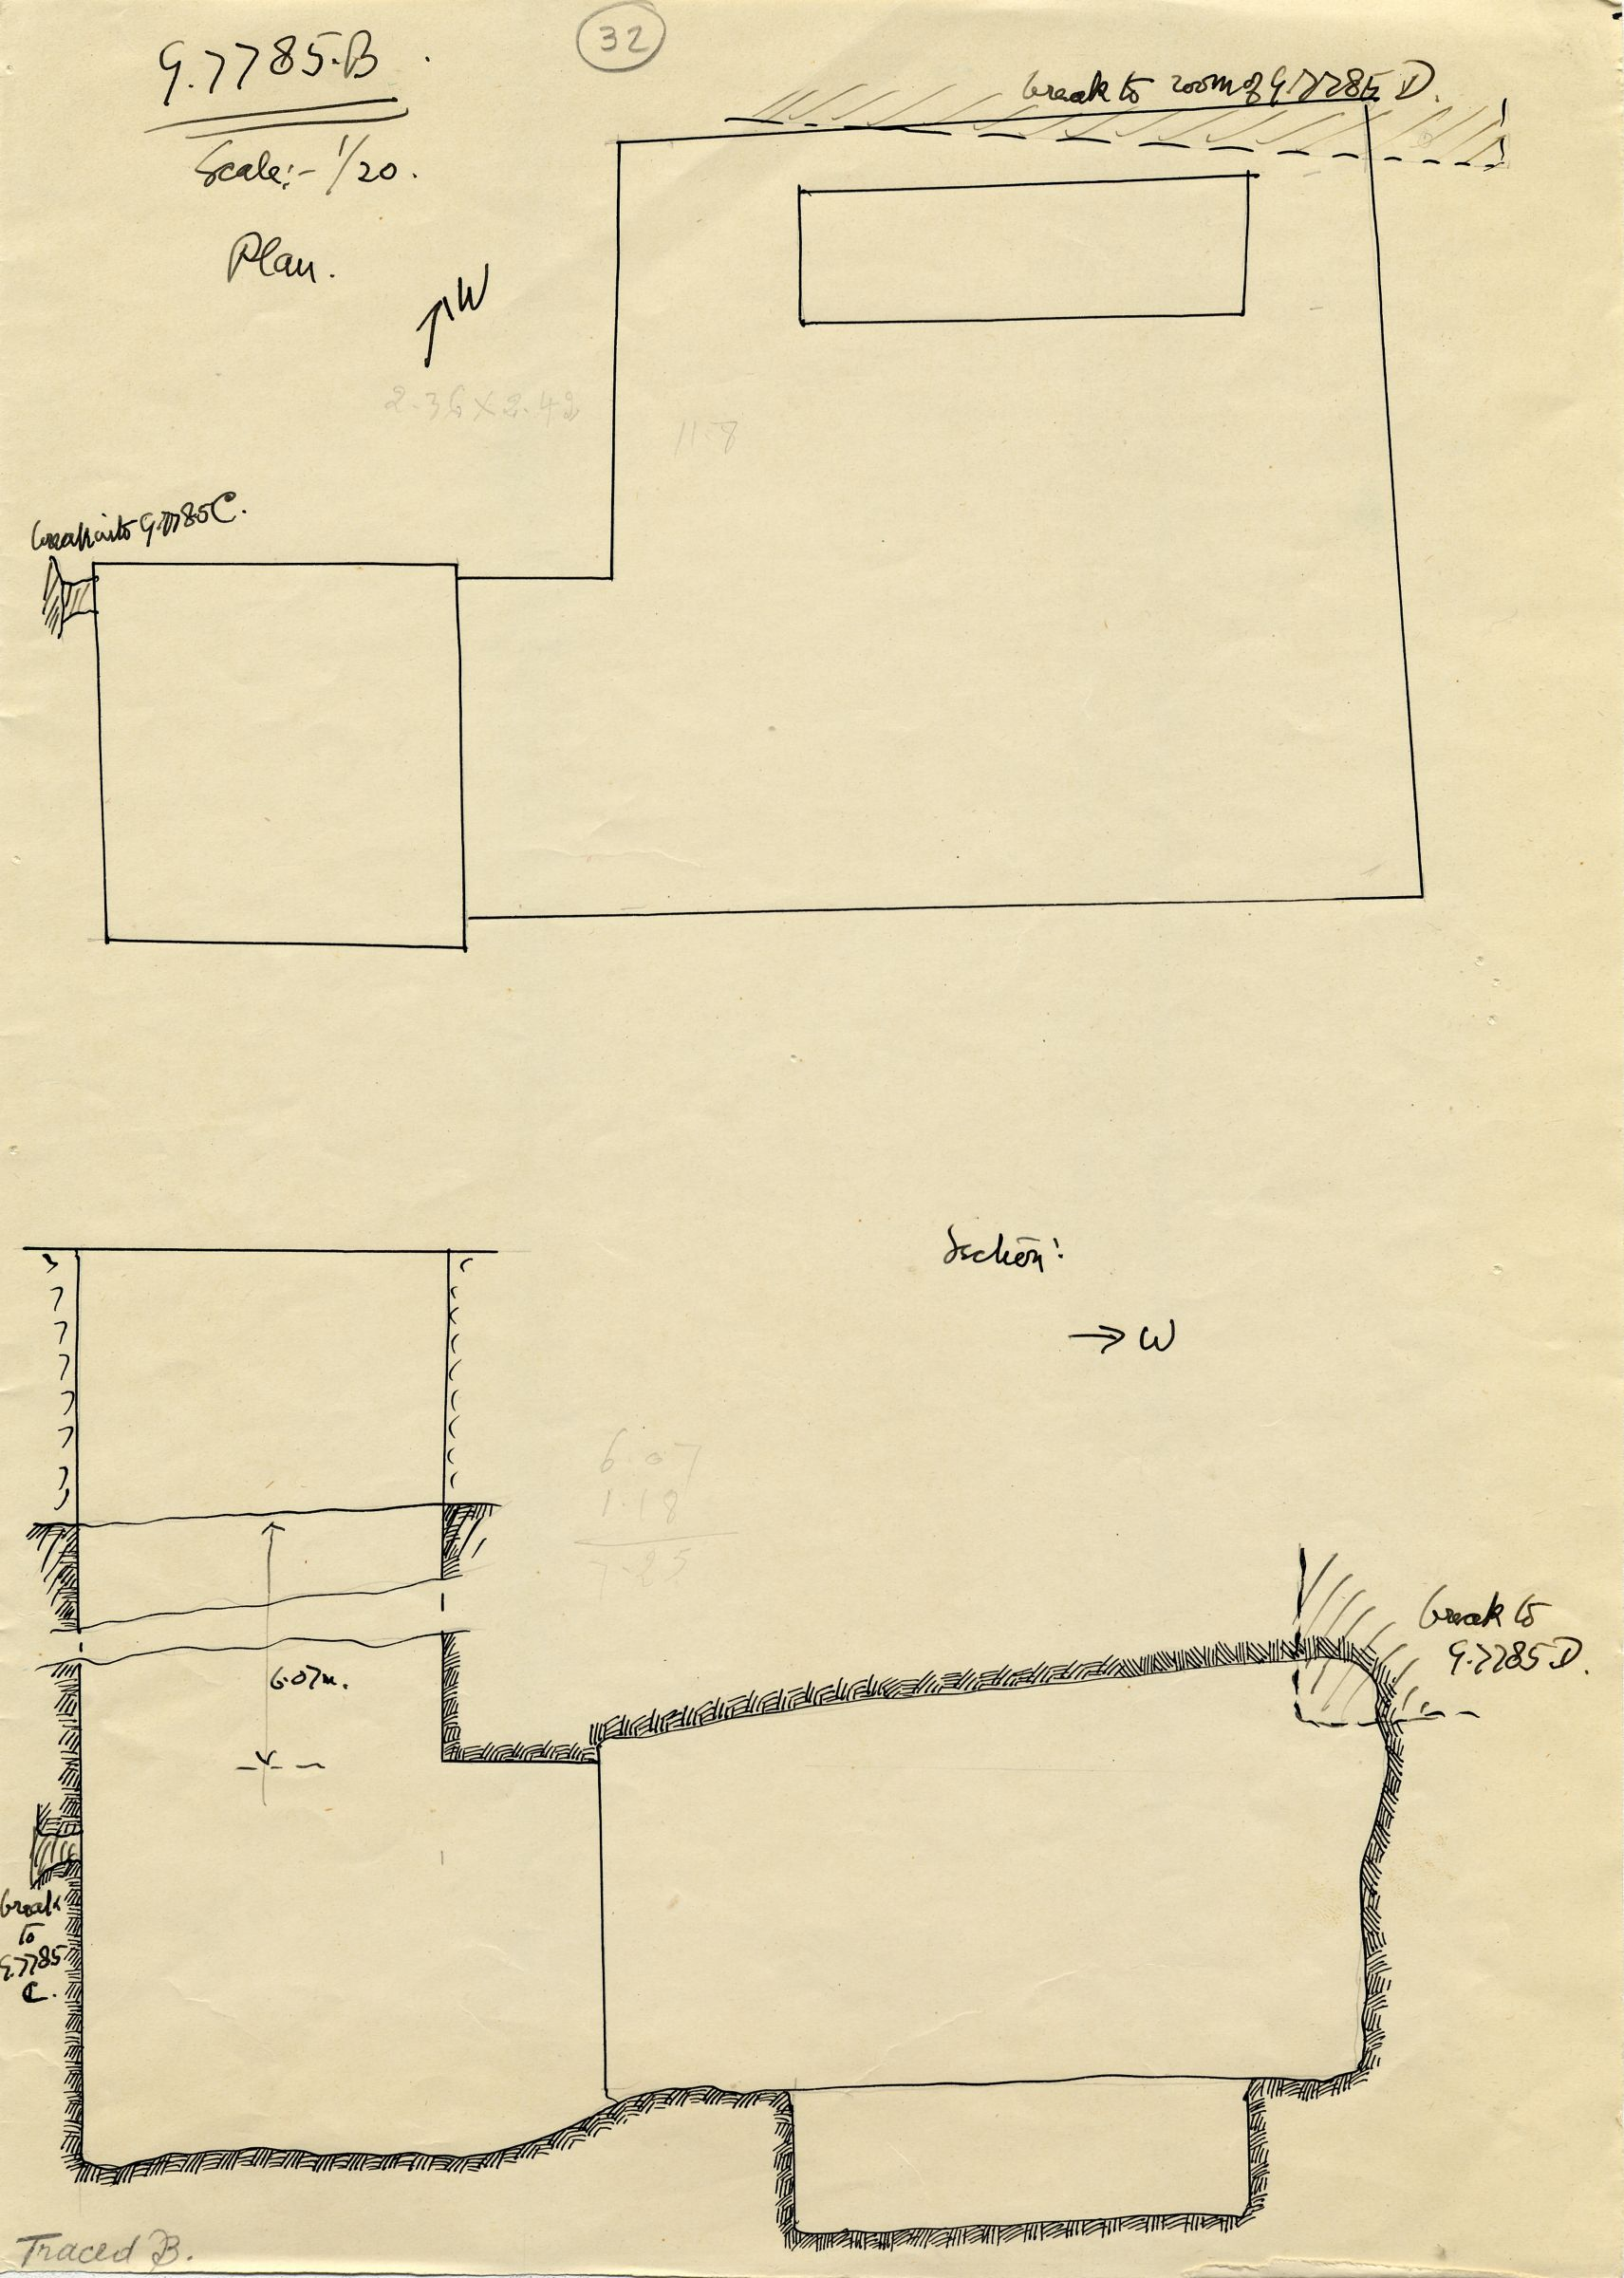 Maps and plans: G 7785, Shaft B